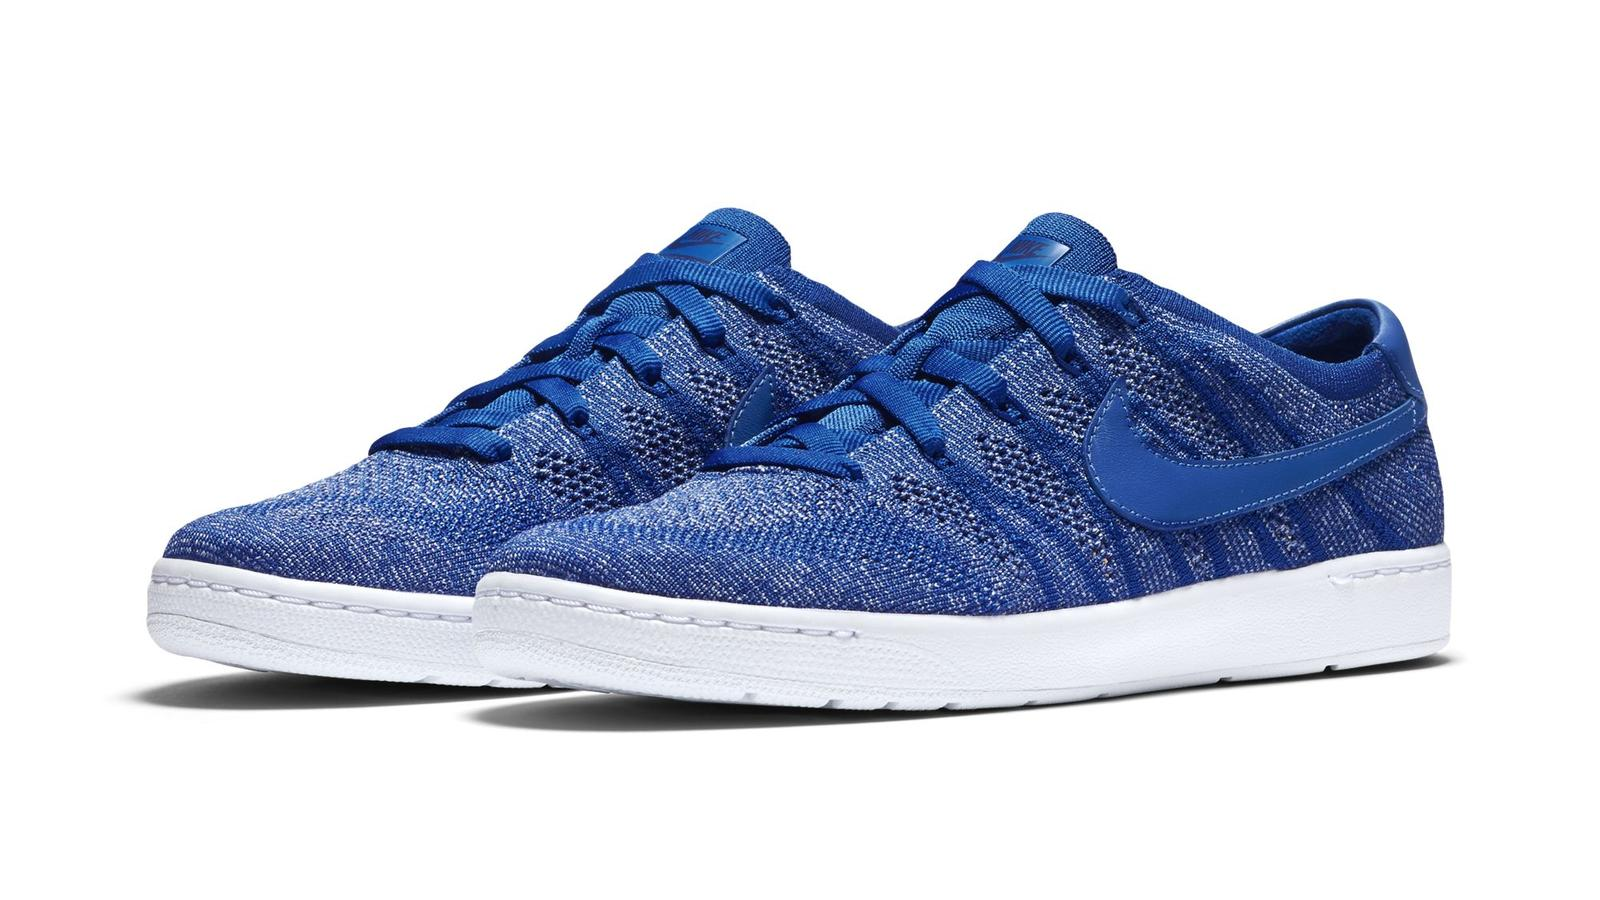 Nike_Tennis_Classic_Ultra_Flyknit_mens_4_hd_1600